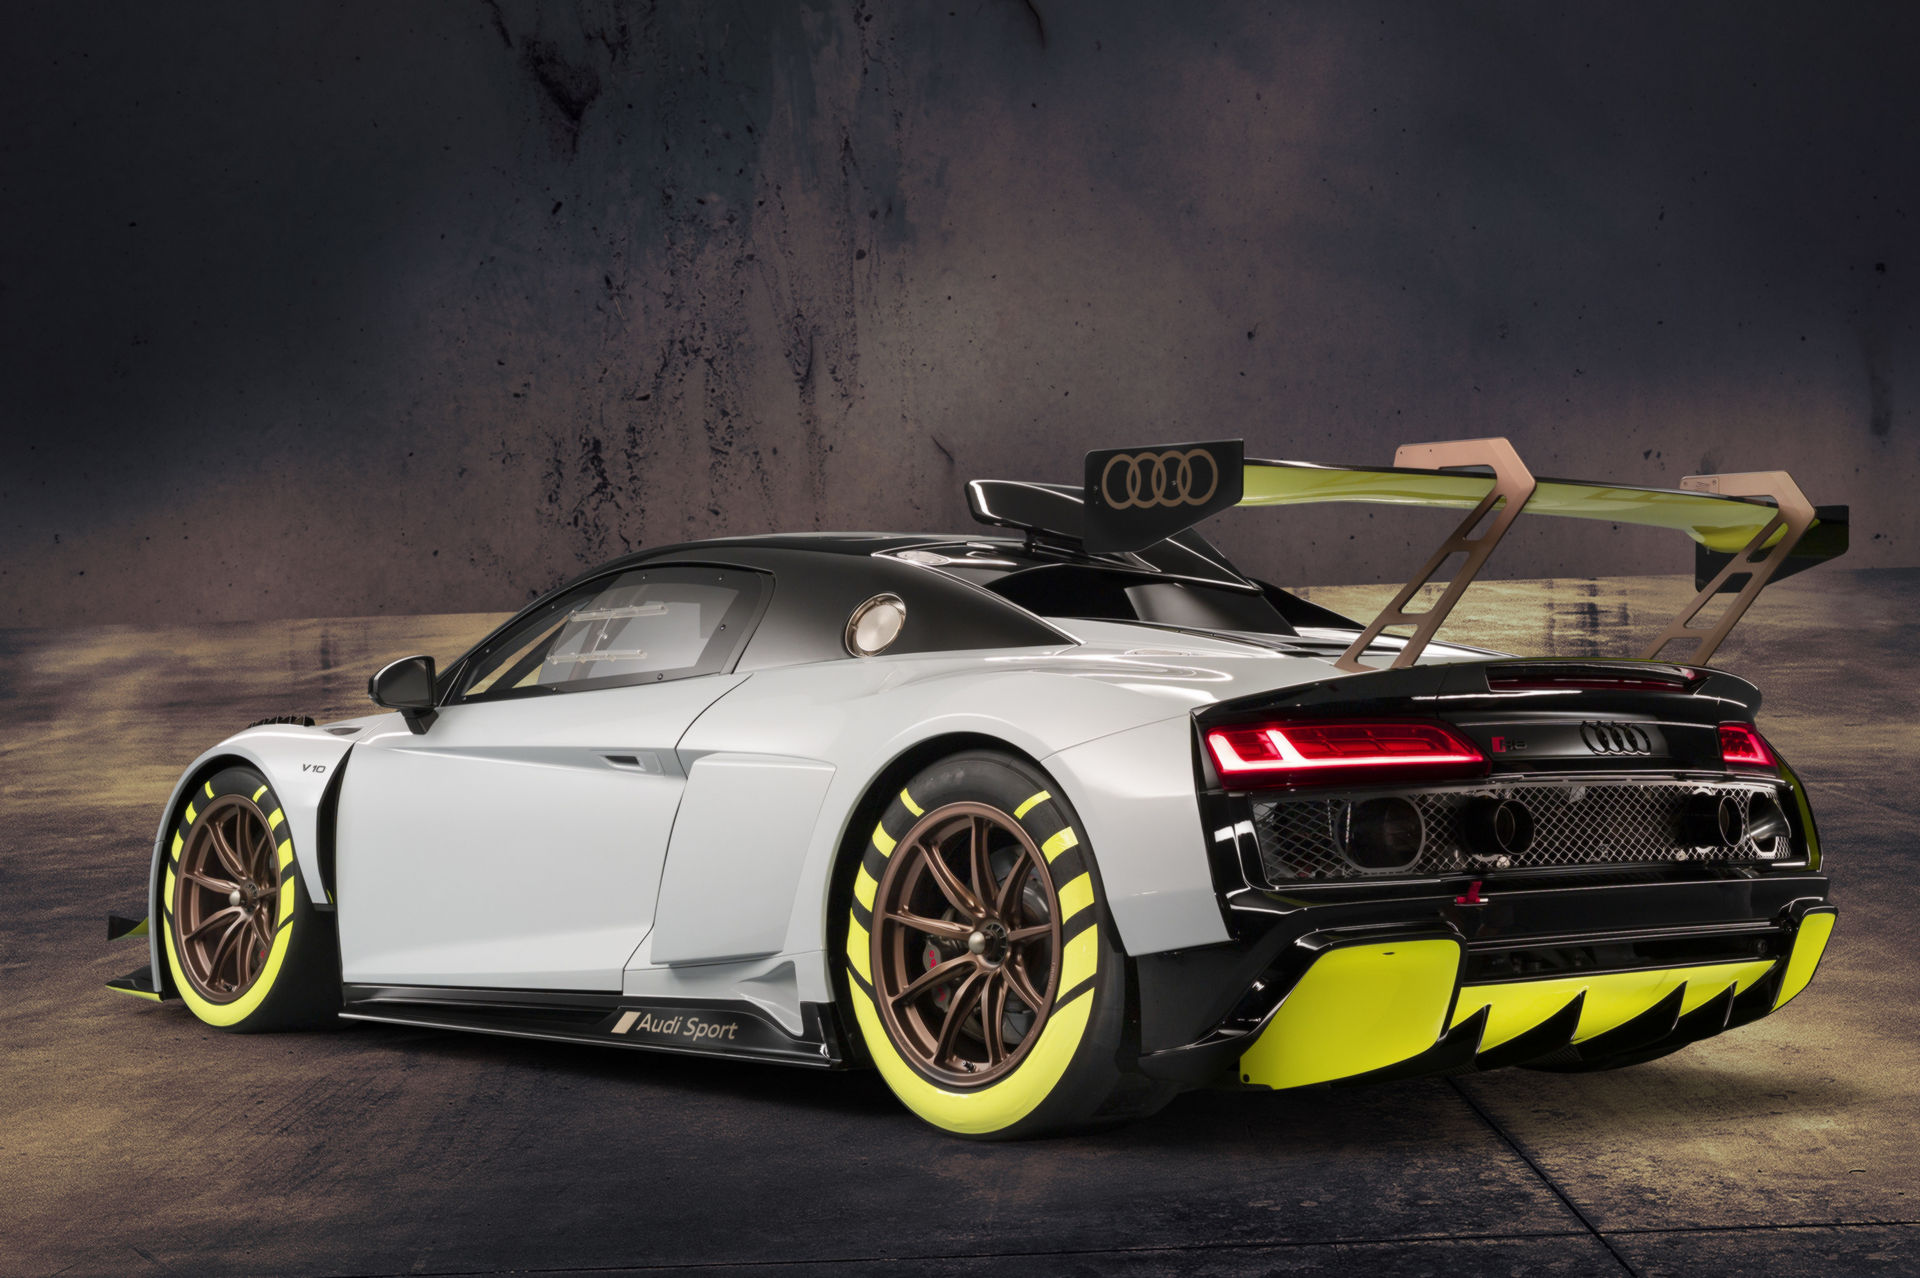 Audi Has The R8 Lms Gt2 Racer Ready For Christmas News